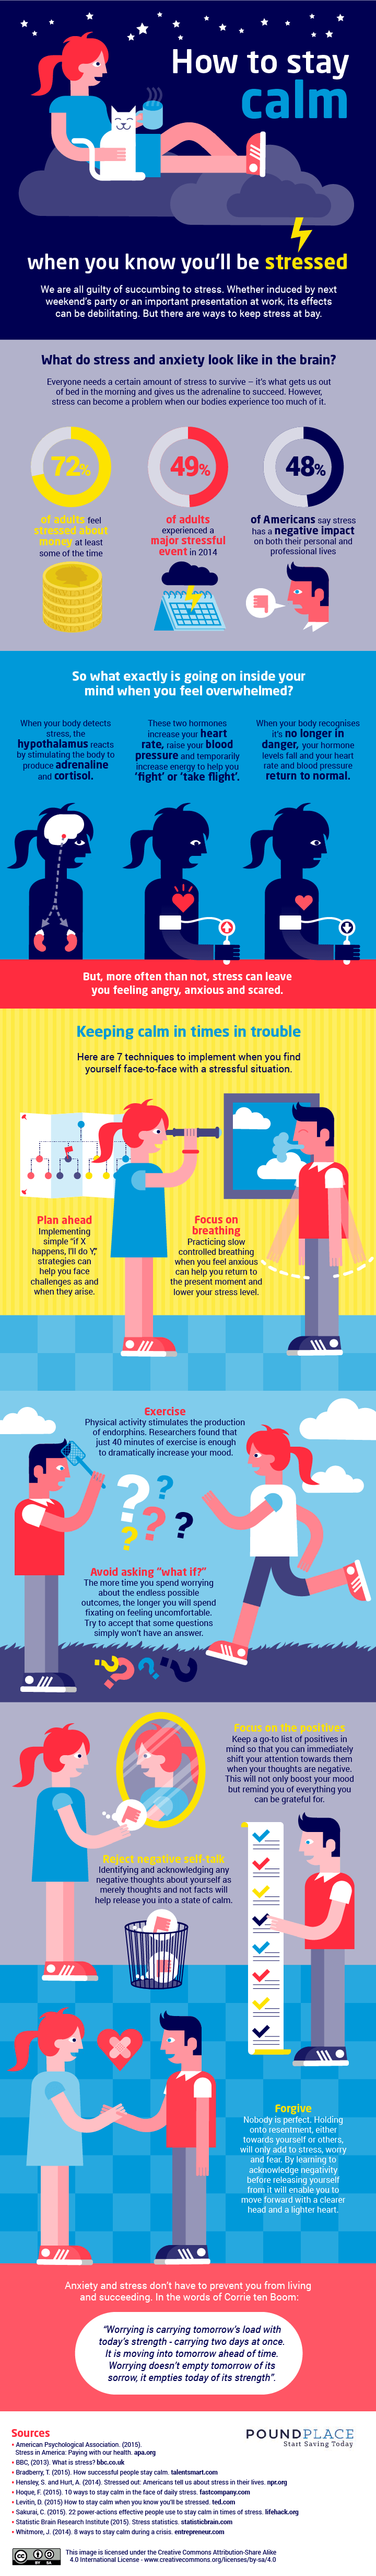 This Is How You Can Stay Calm In Stressful Situations Infographic